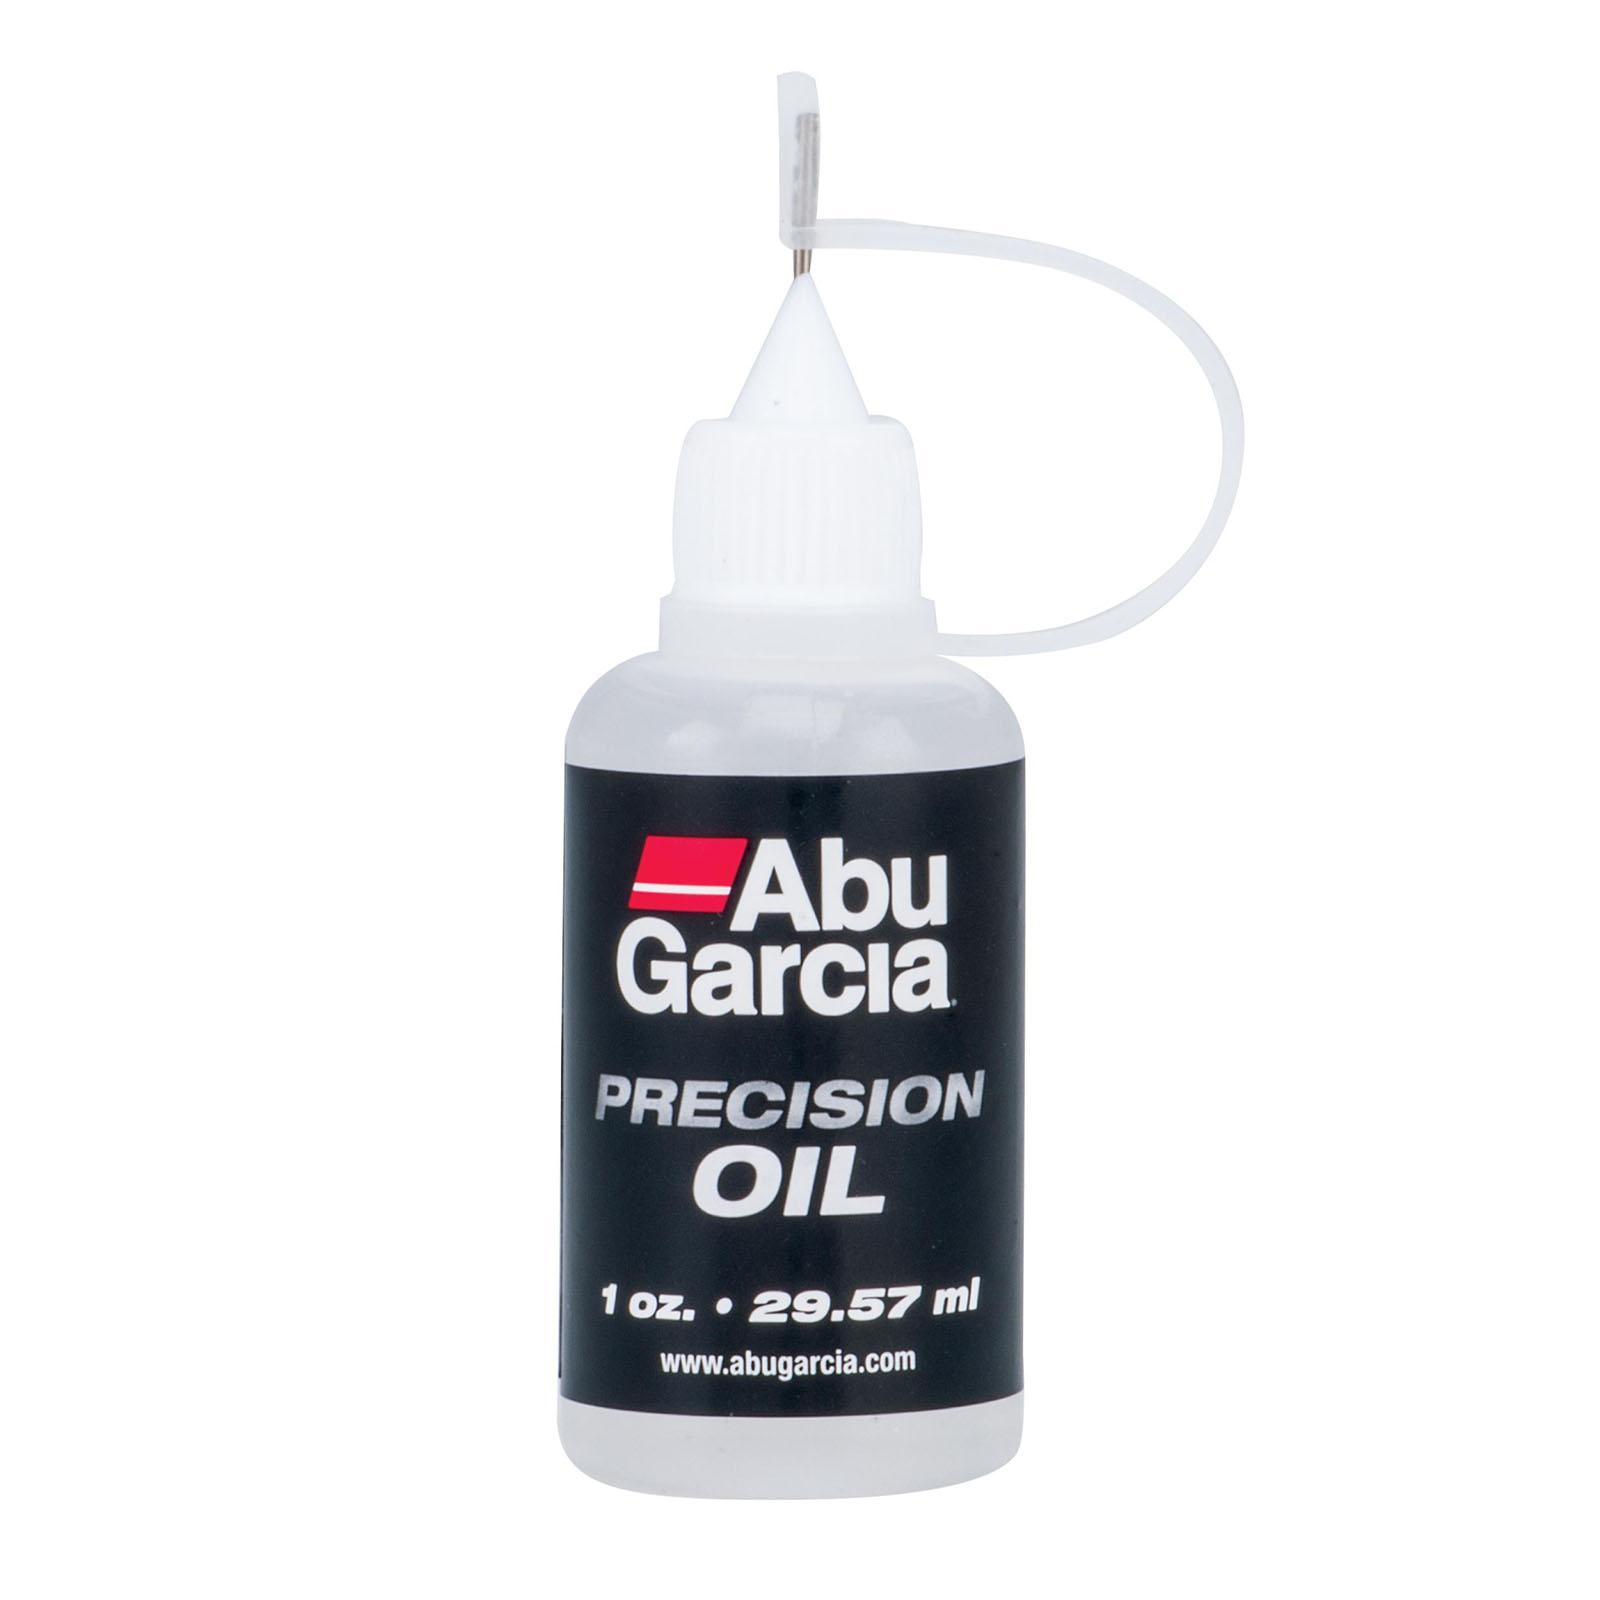 Abu Garcia Precision Reel Oil thumbnail